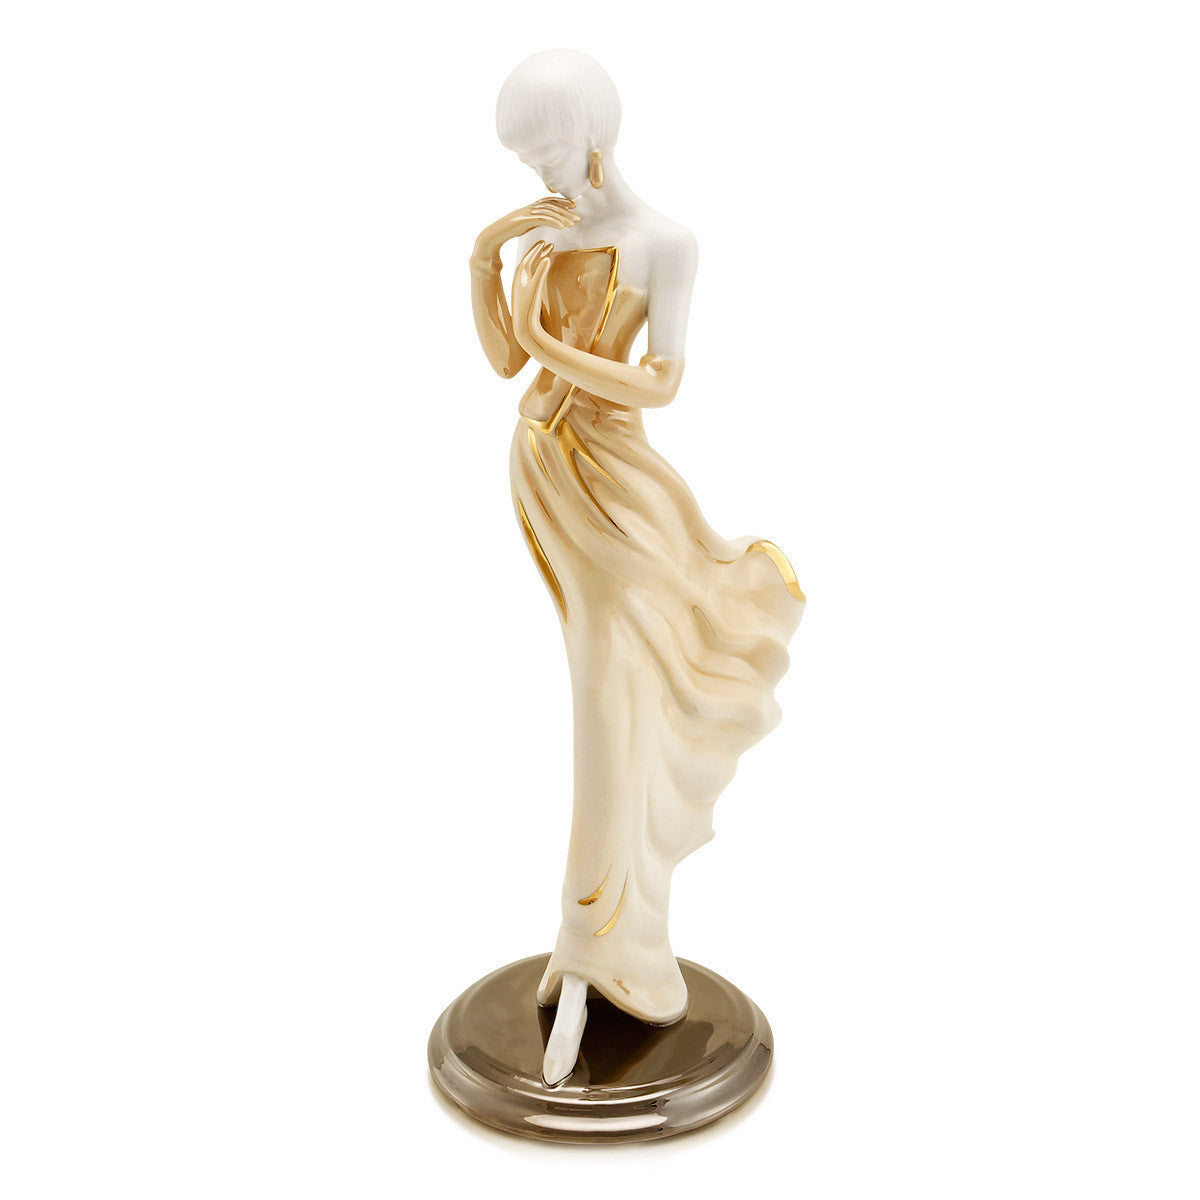 ceramic porcelain woman statue figurine collection